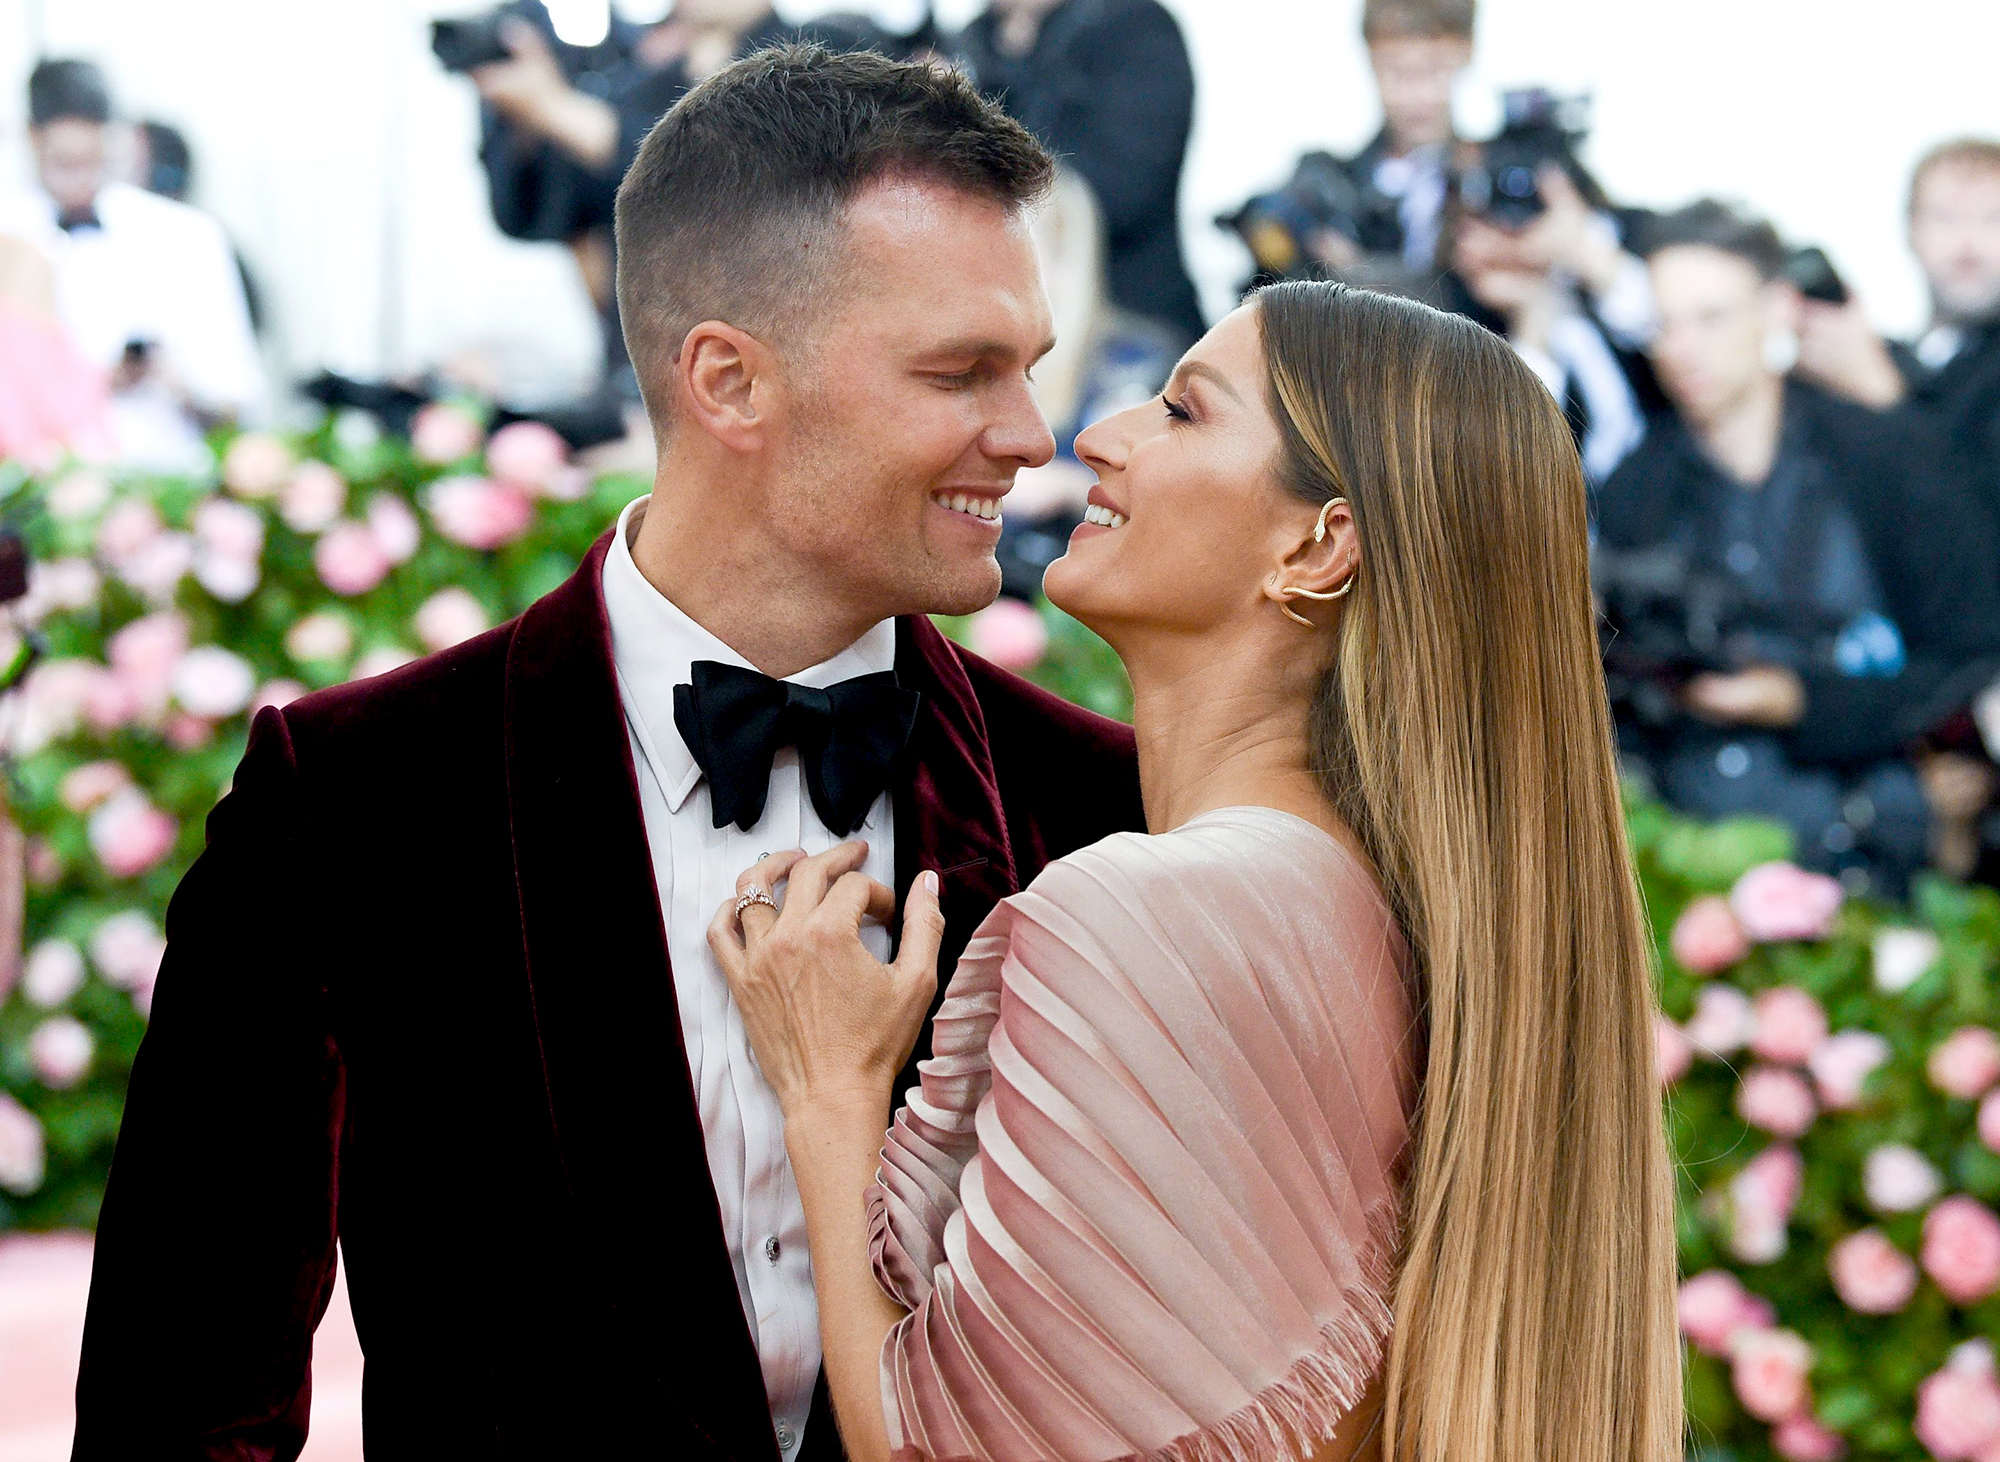 Tom-Brady-Reveals-Exact-Spot-He-First-Met-His-Wife-Gisele-Bundchen